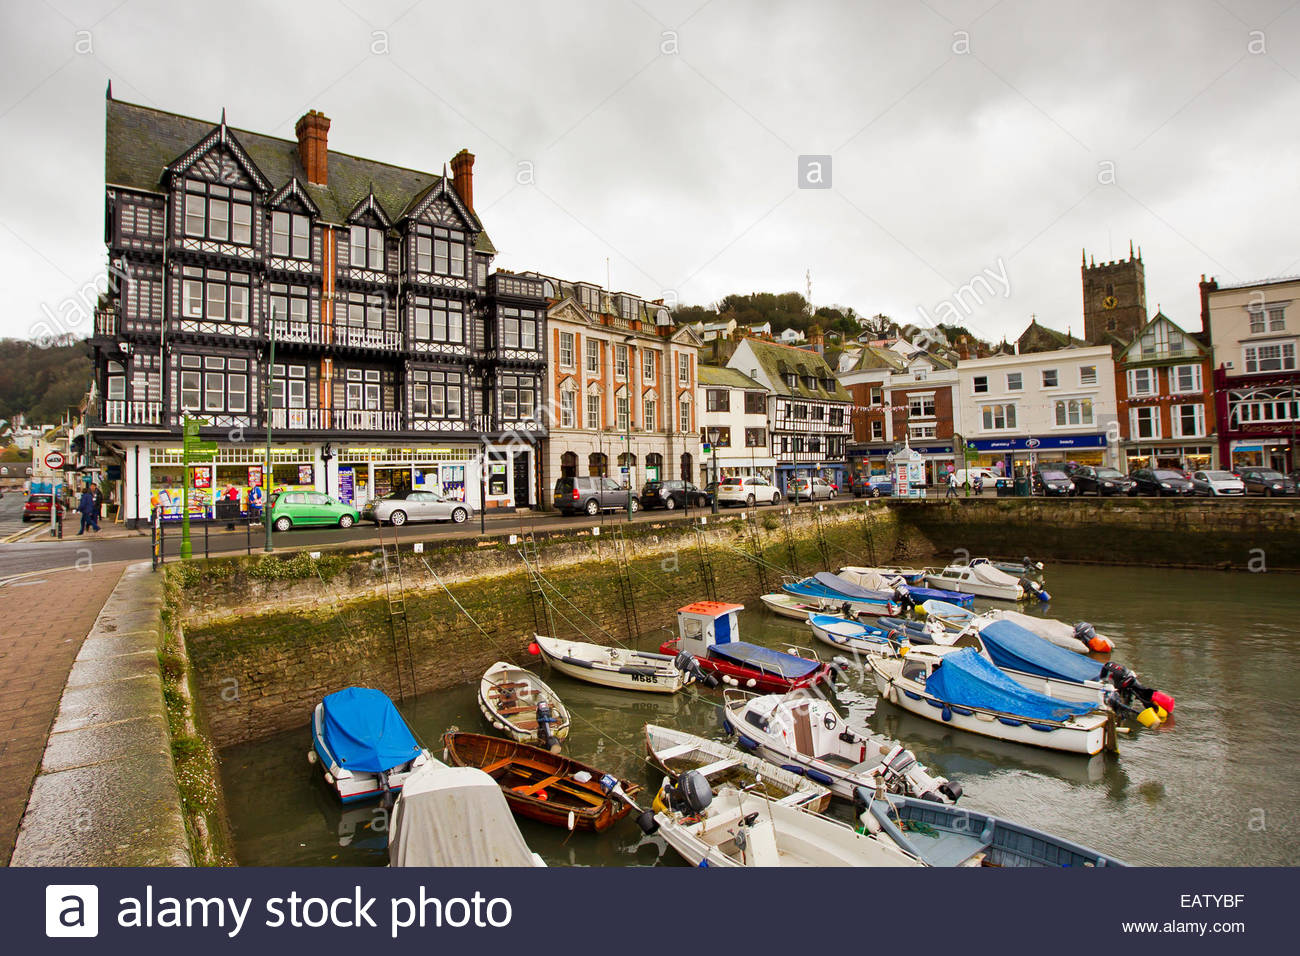 Boats tied up at a basin in Dartmouth, England. - Stock Image